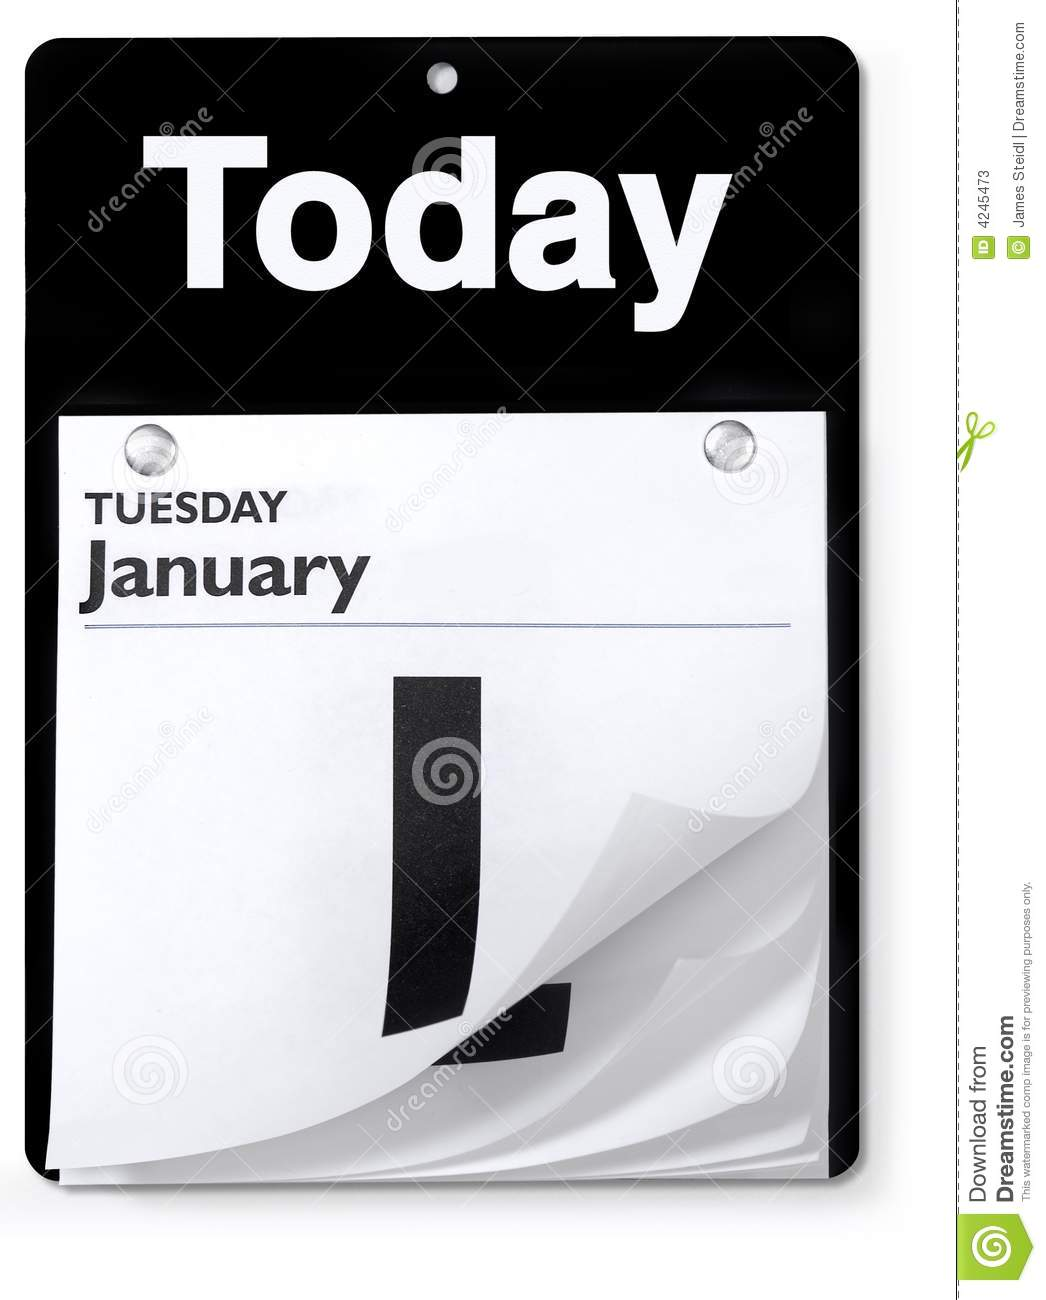 Day Calendar Orthographic View Stock Photos - Image: 4245473